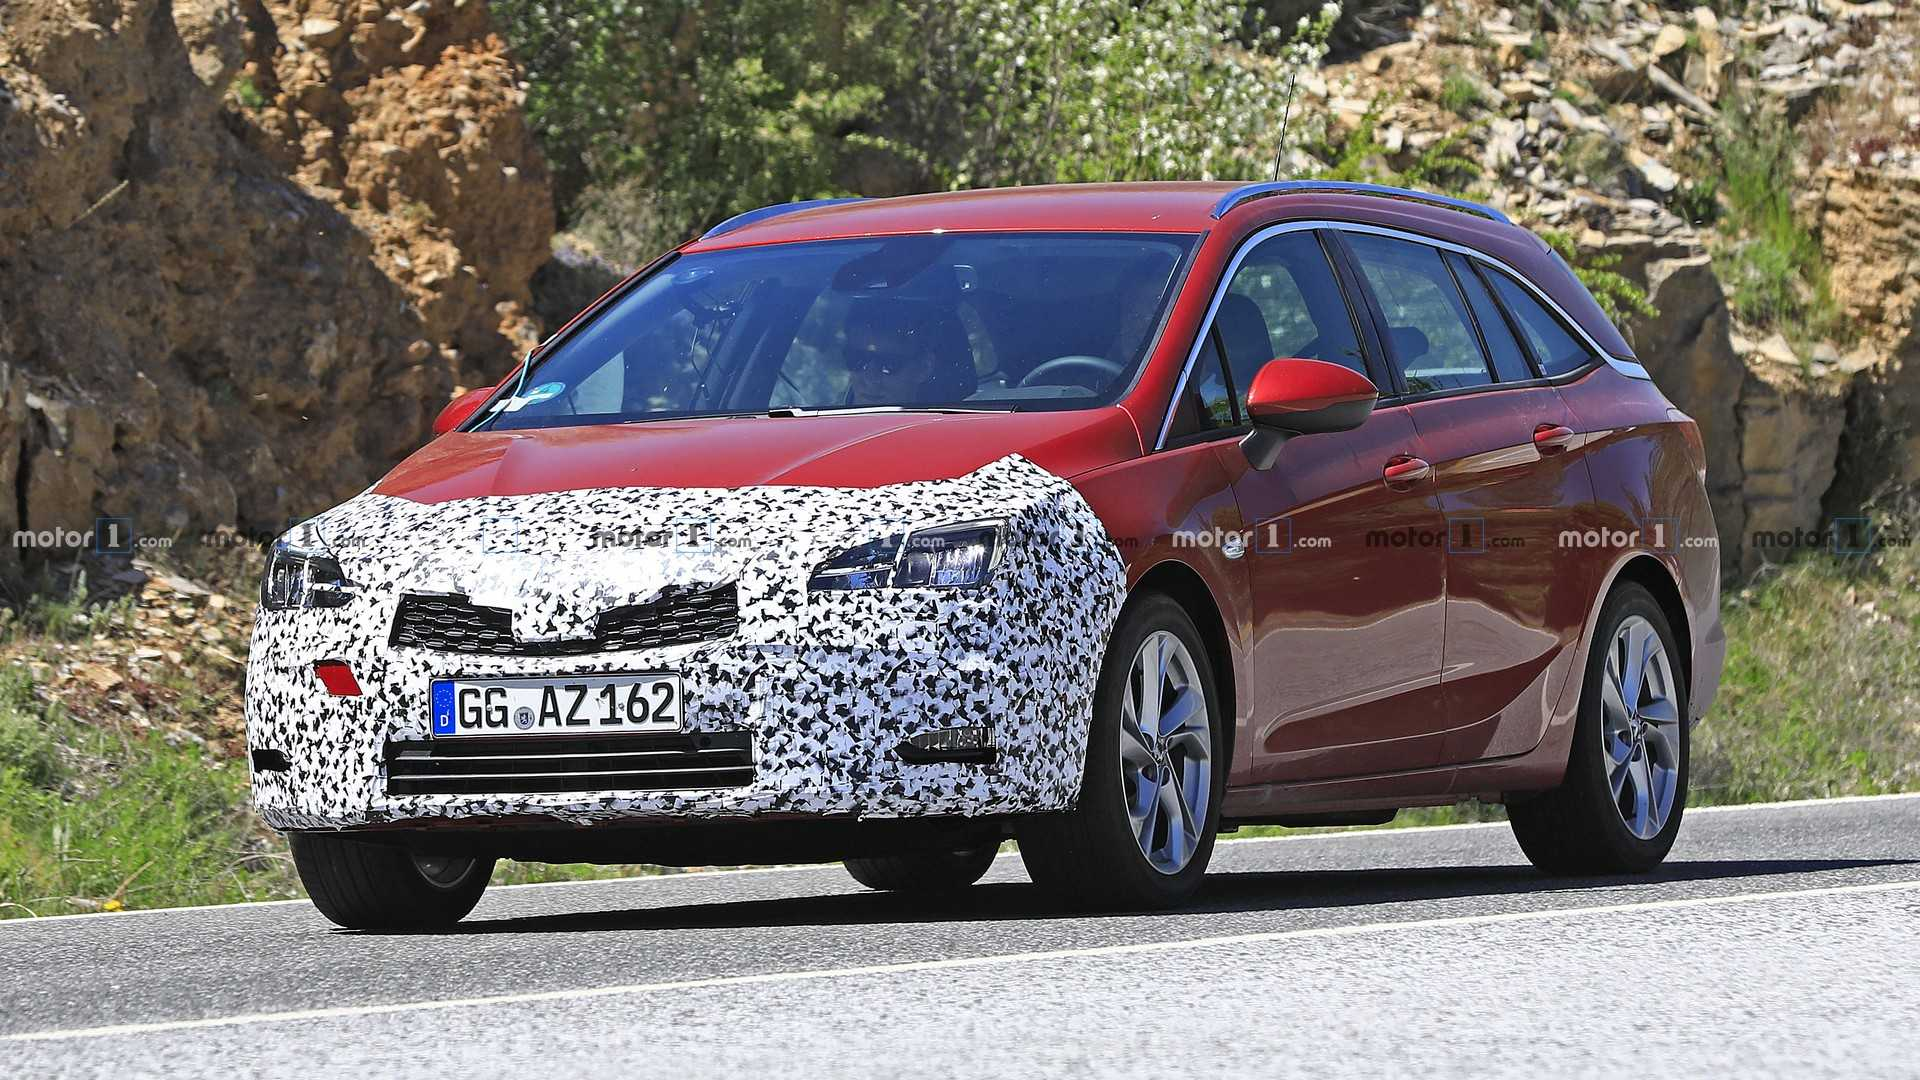 Based on the pics provided, the new Astra Wagon gets a major front fascia update